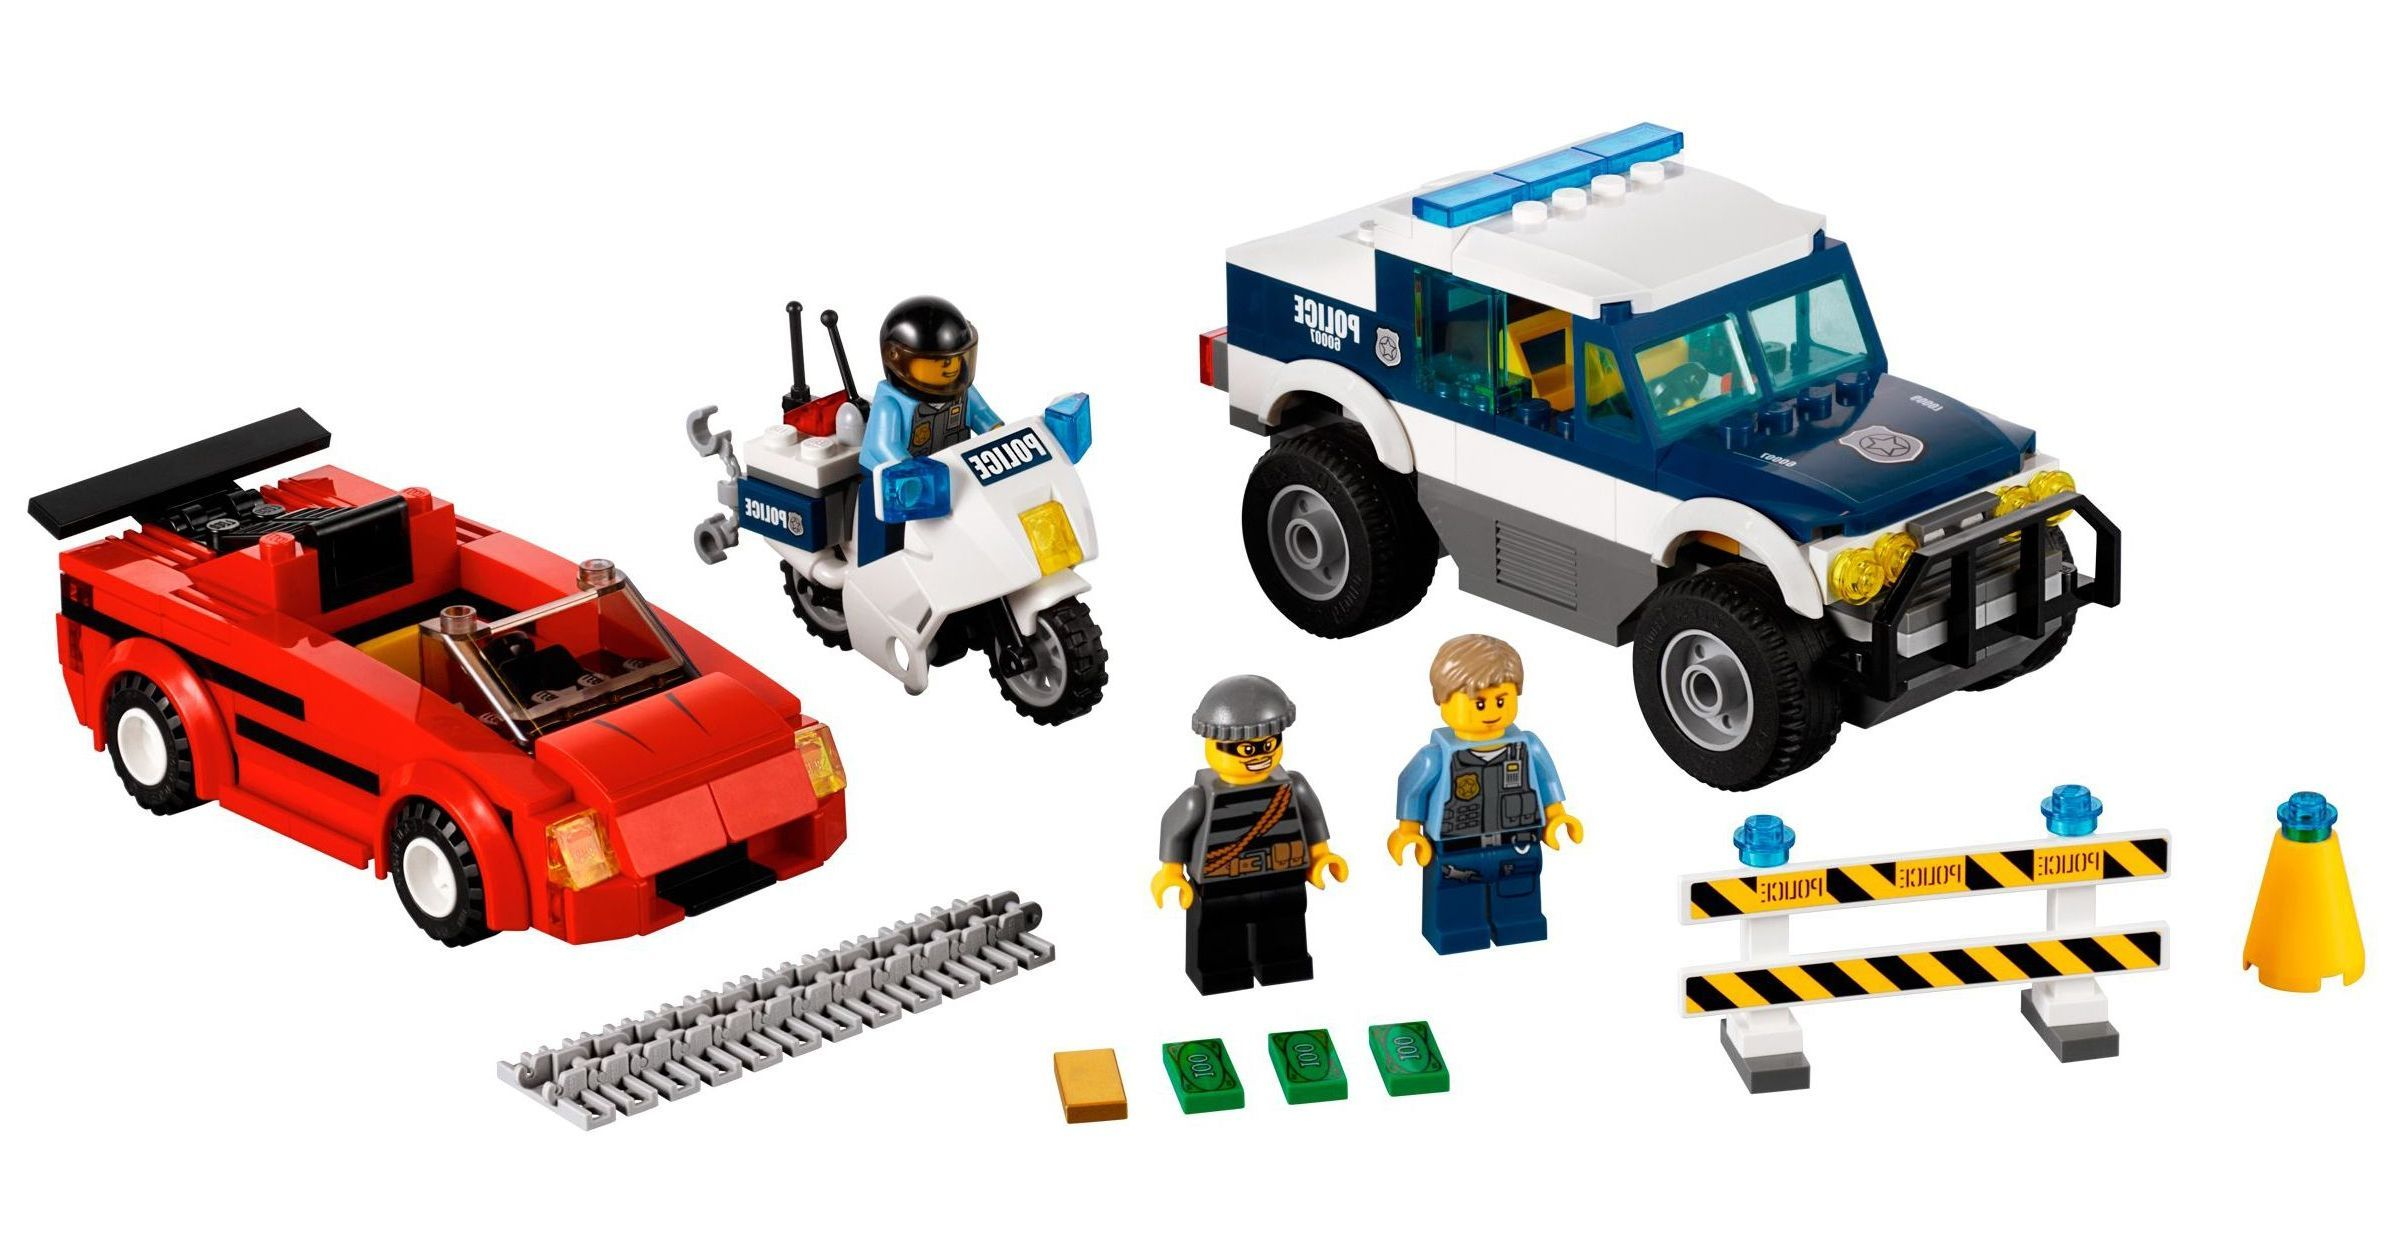 Pin lego 60032 city the lego summer wave in official images on - Lego Police City Chase